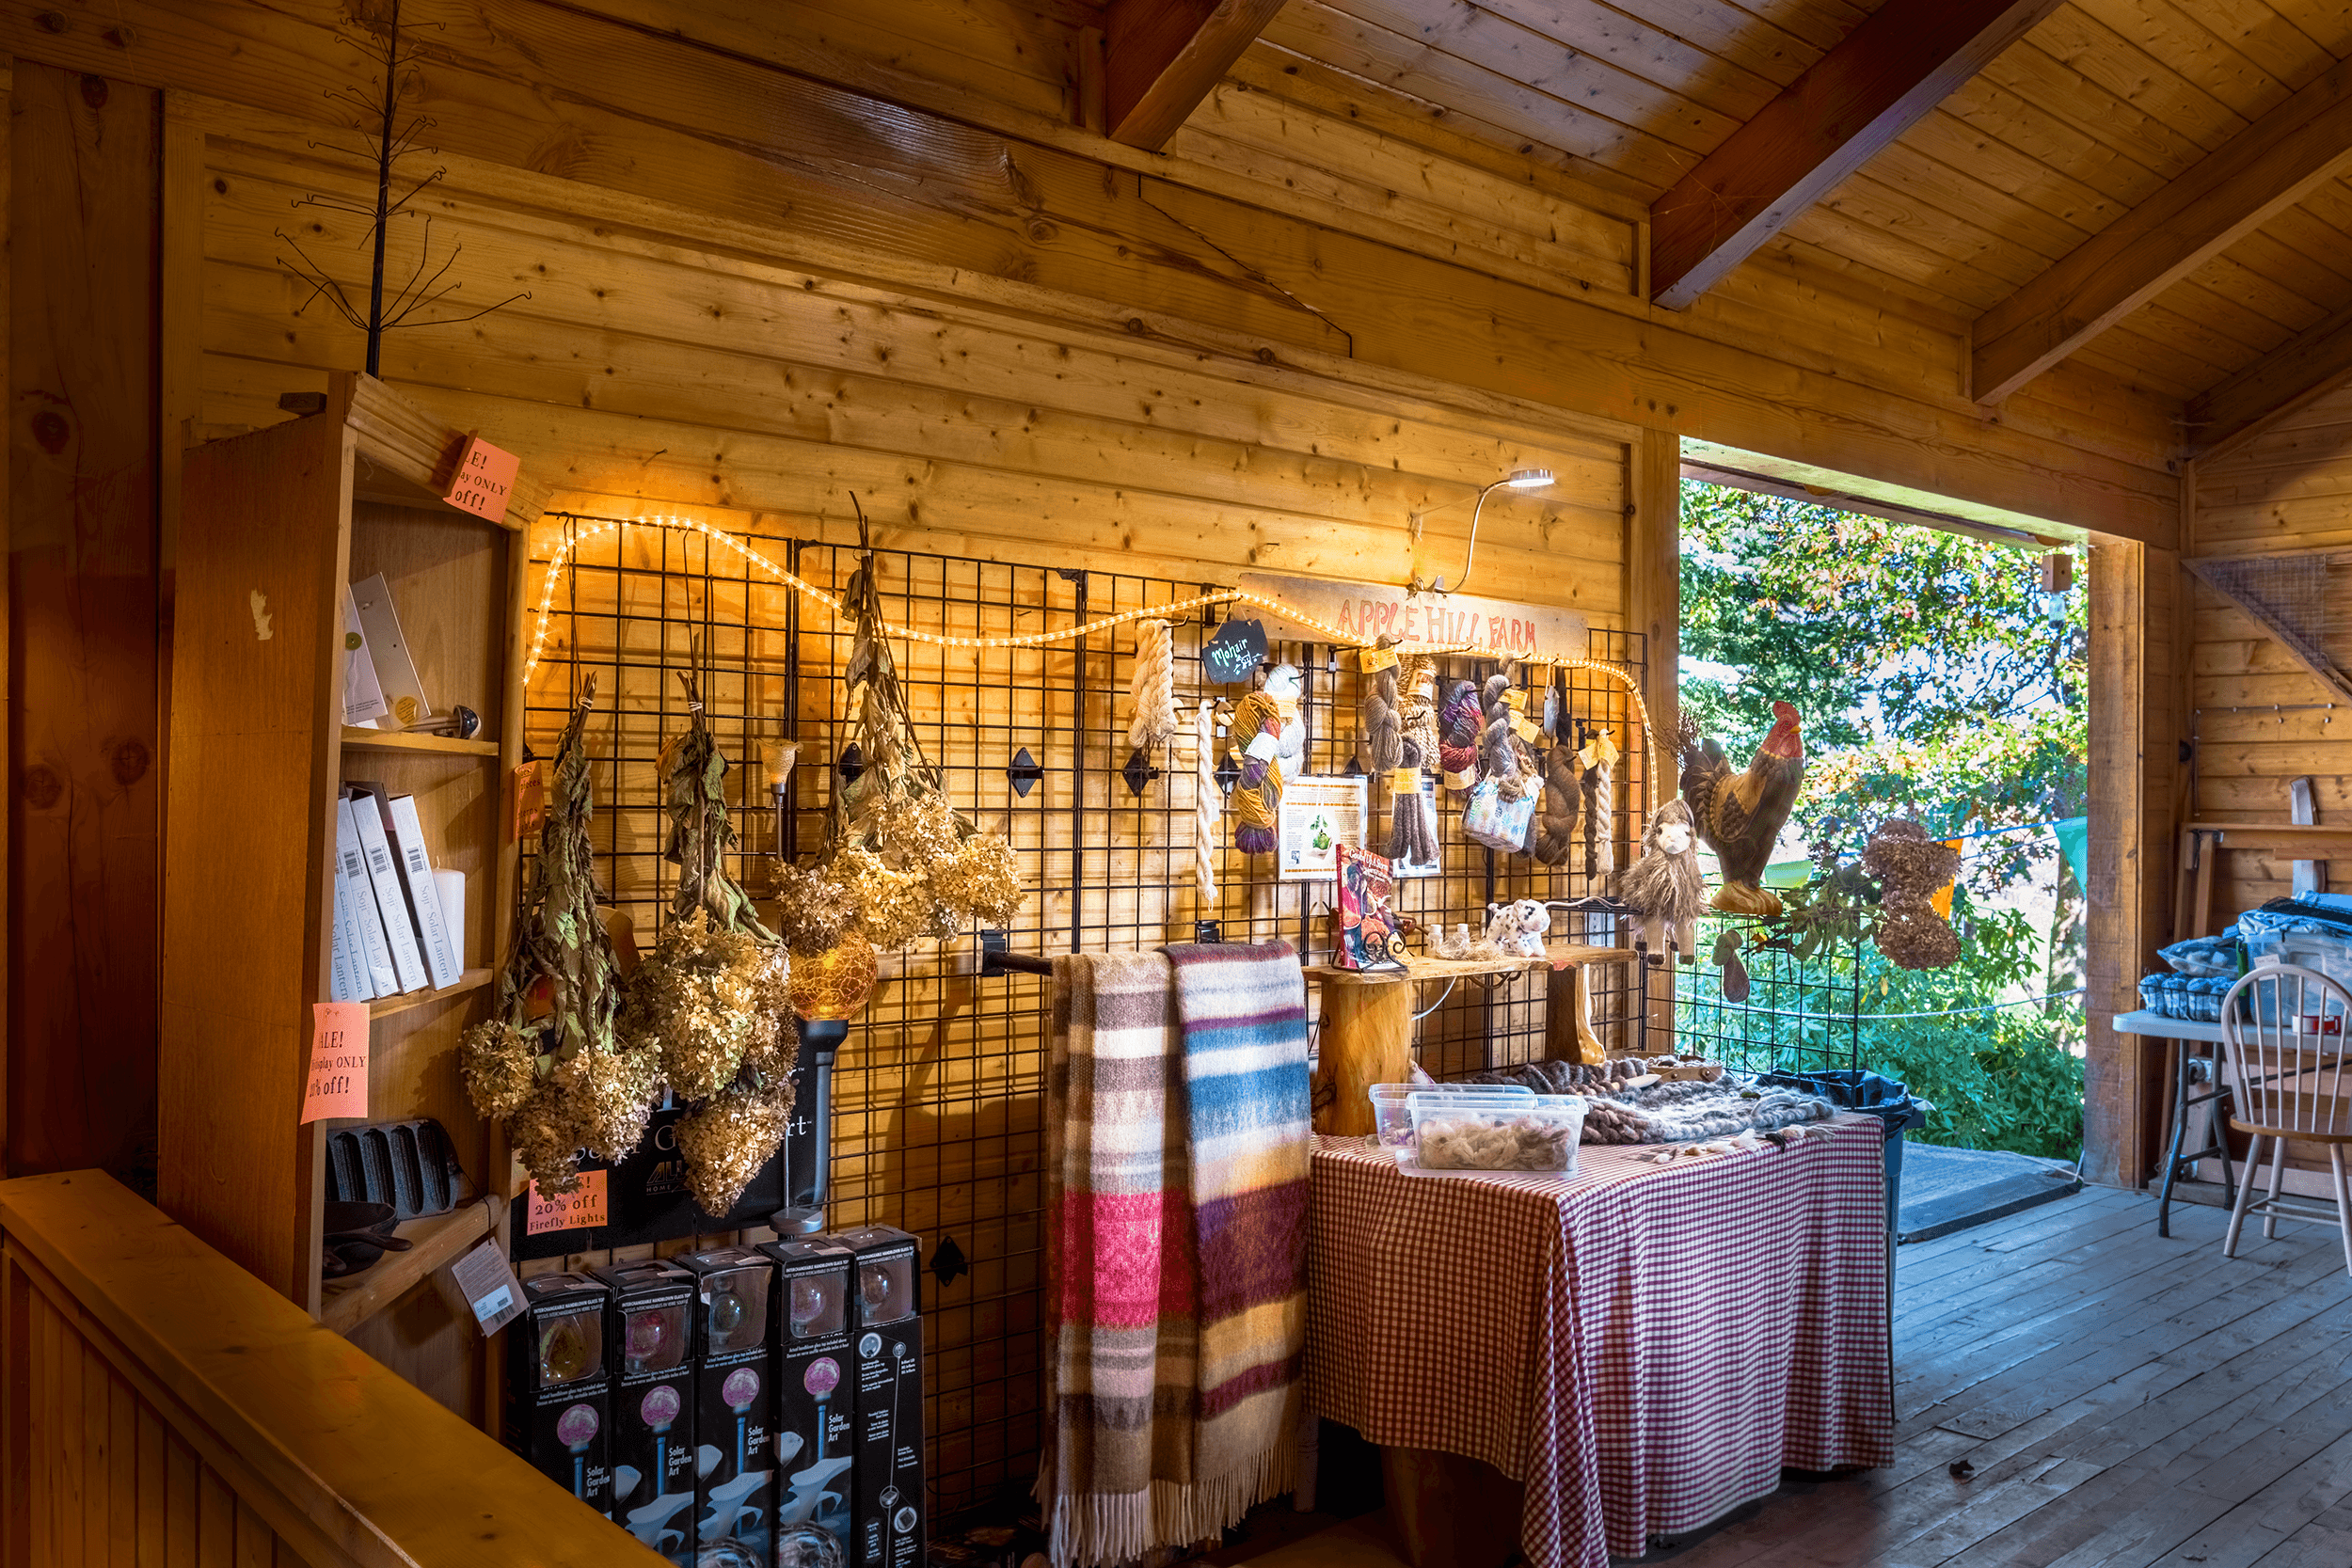 Tours usually end on the second floor of the barn, where a display showcases different animal fibers, which you can touch and feel the difference between them.